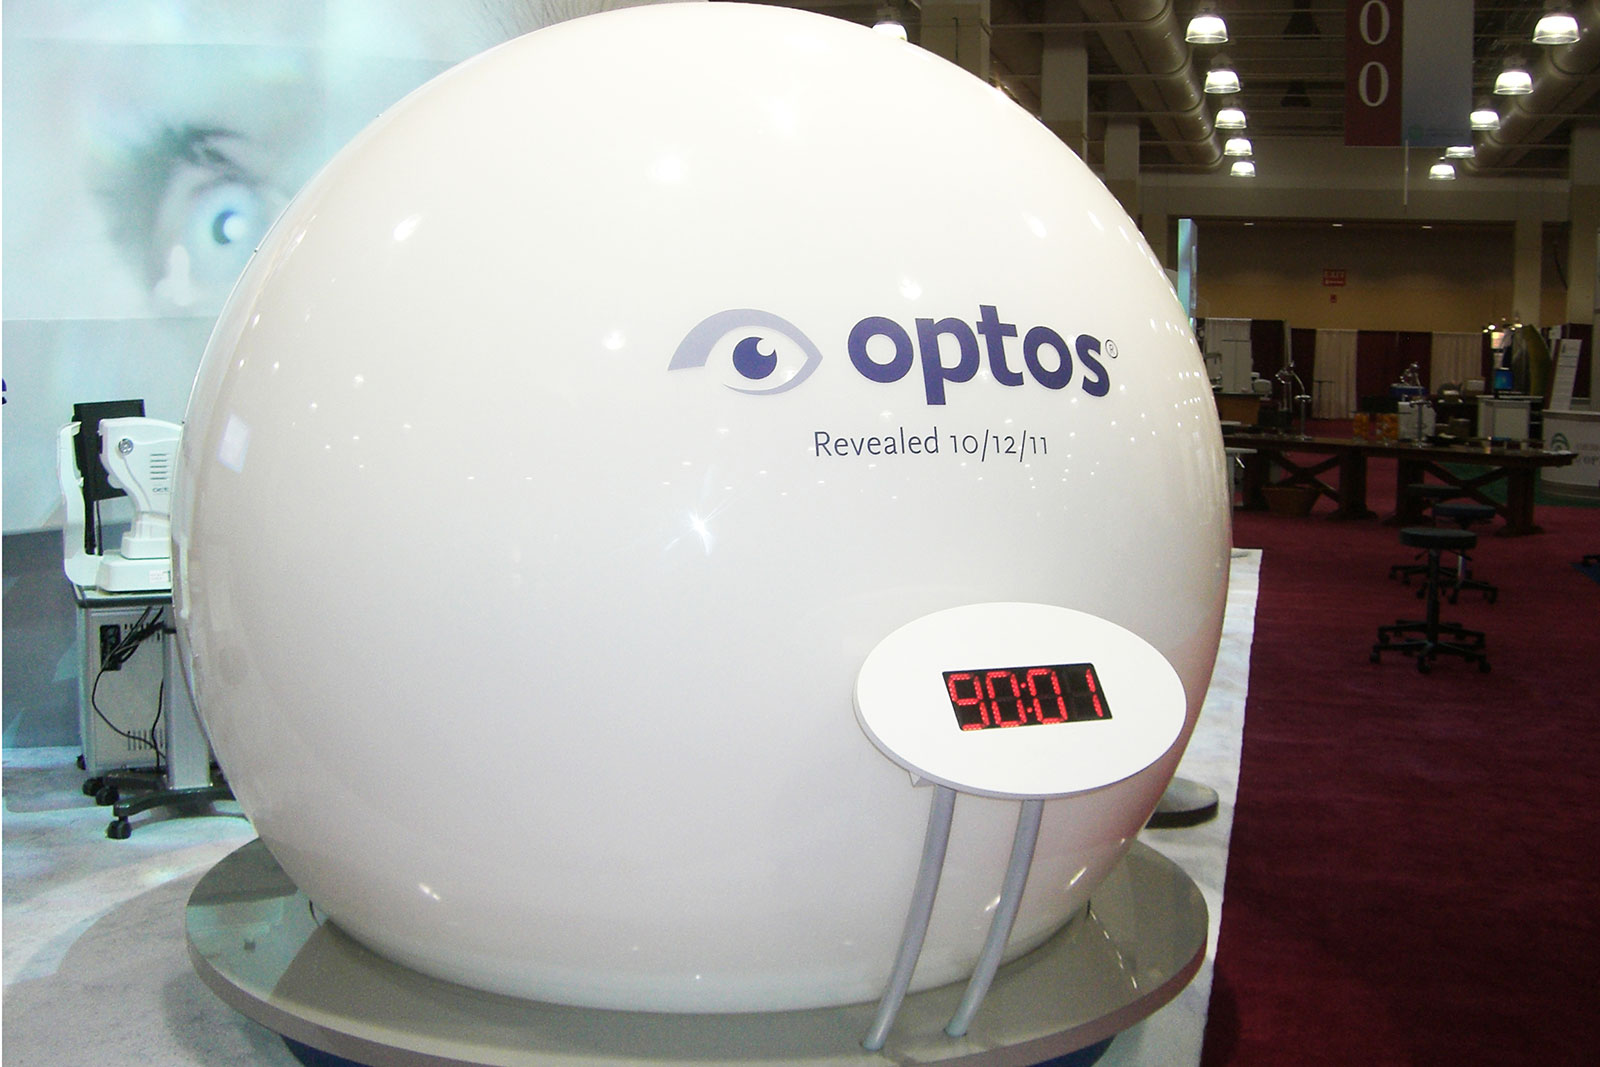 Custom Branded Environment for Optos at Academy of Optometry Trade Show, Product Launch